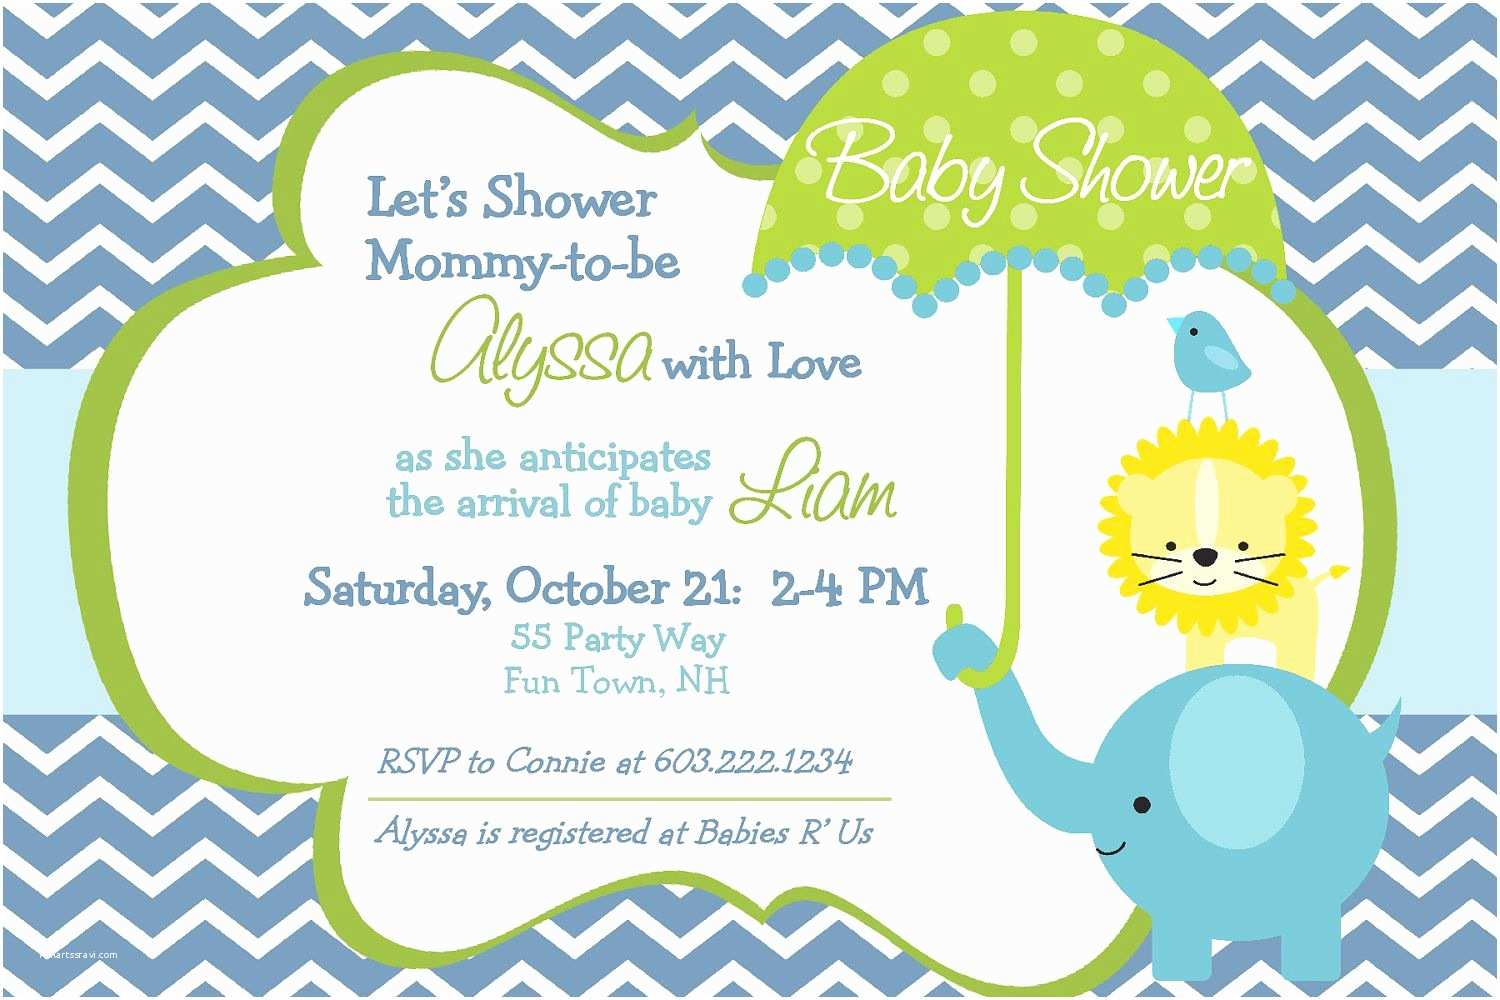 Free Baby Shower Invitations Templates Baby Shower Invitations Wording Page 1 Sports